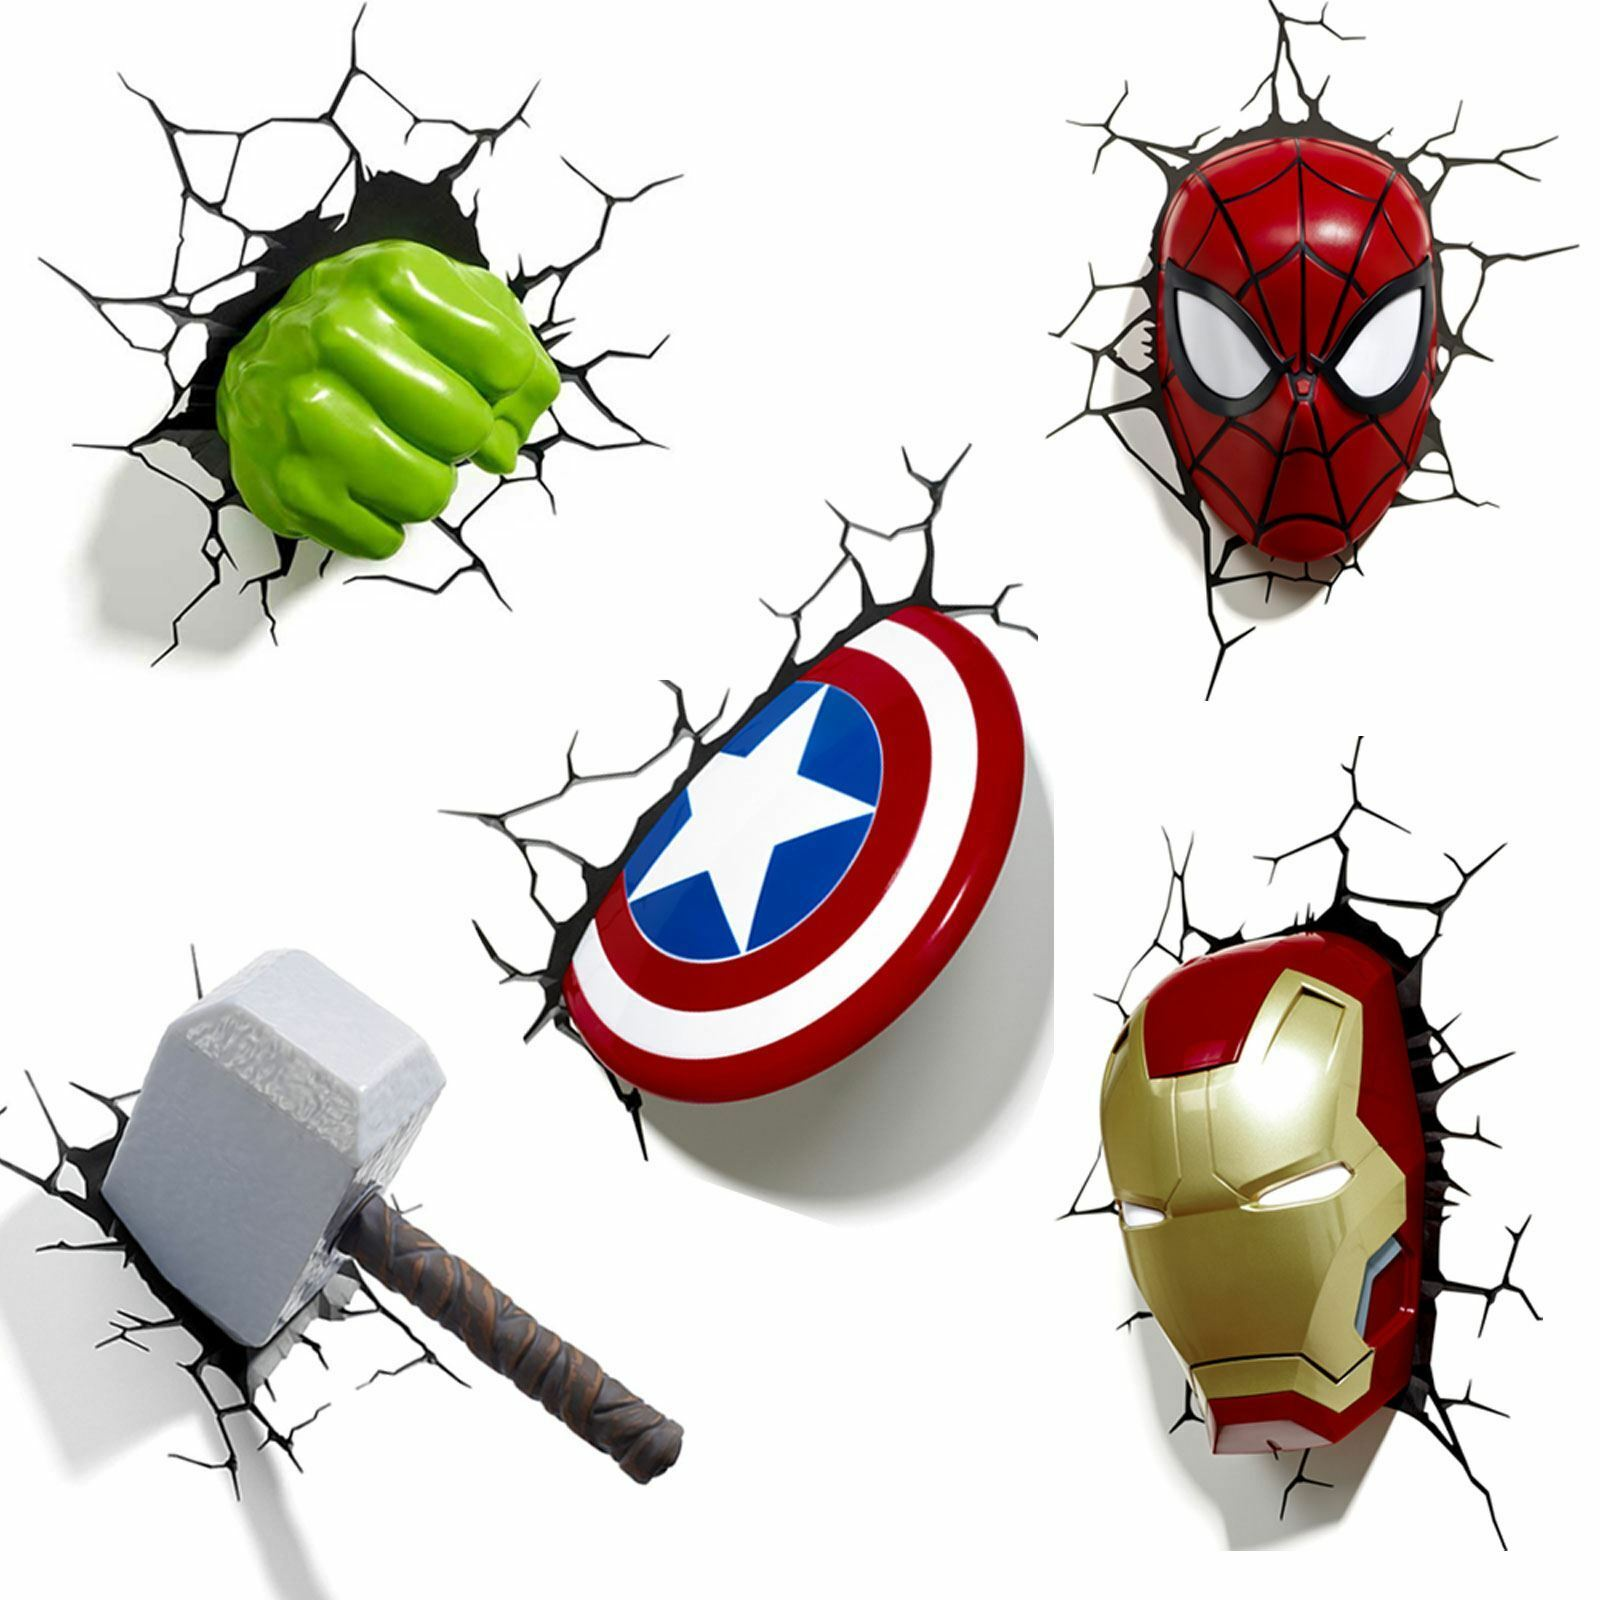 Marvel Bedroom Accessories Marvel Avengers 3d Wall Light Hulk Iron Man Captain America